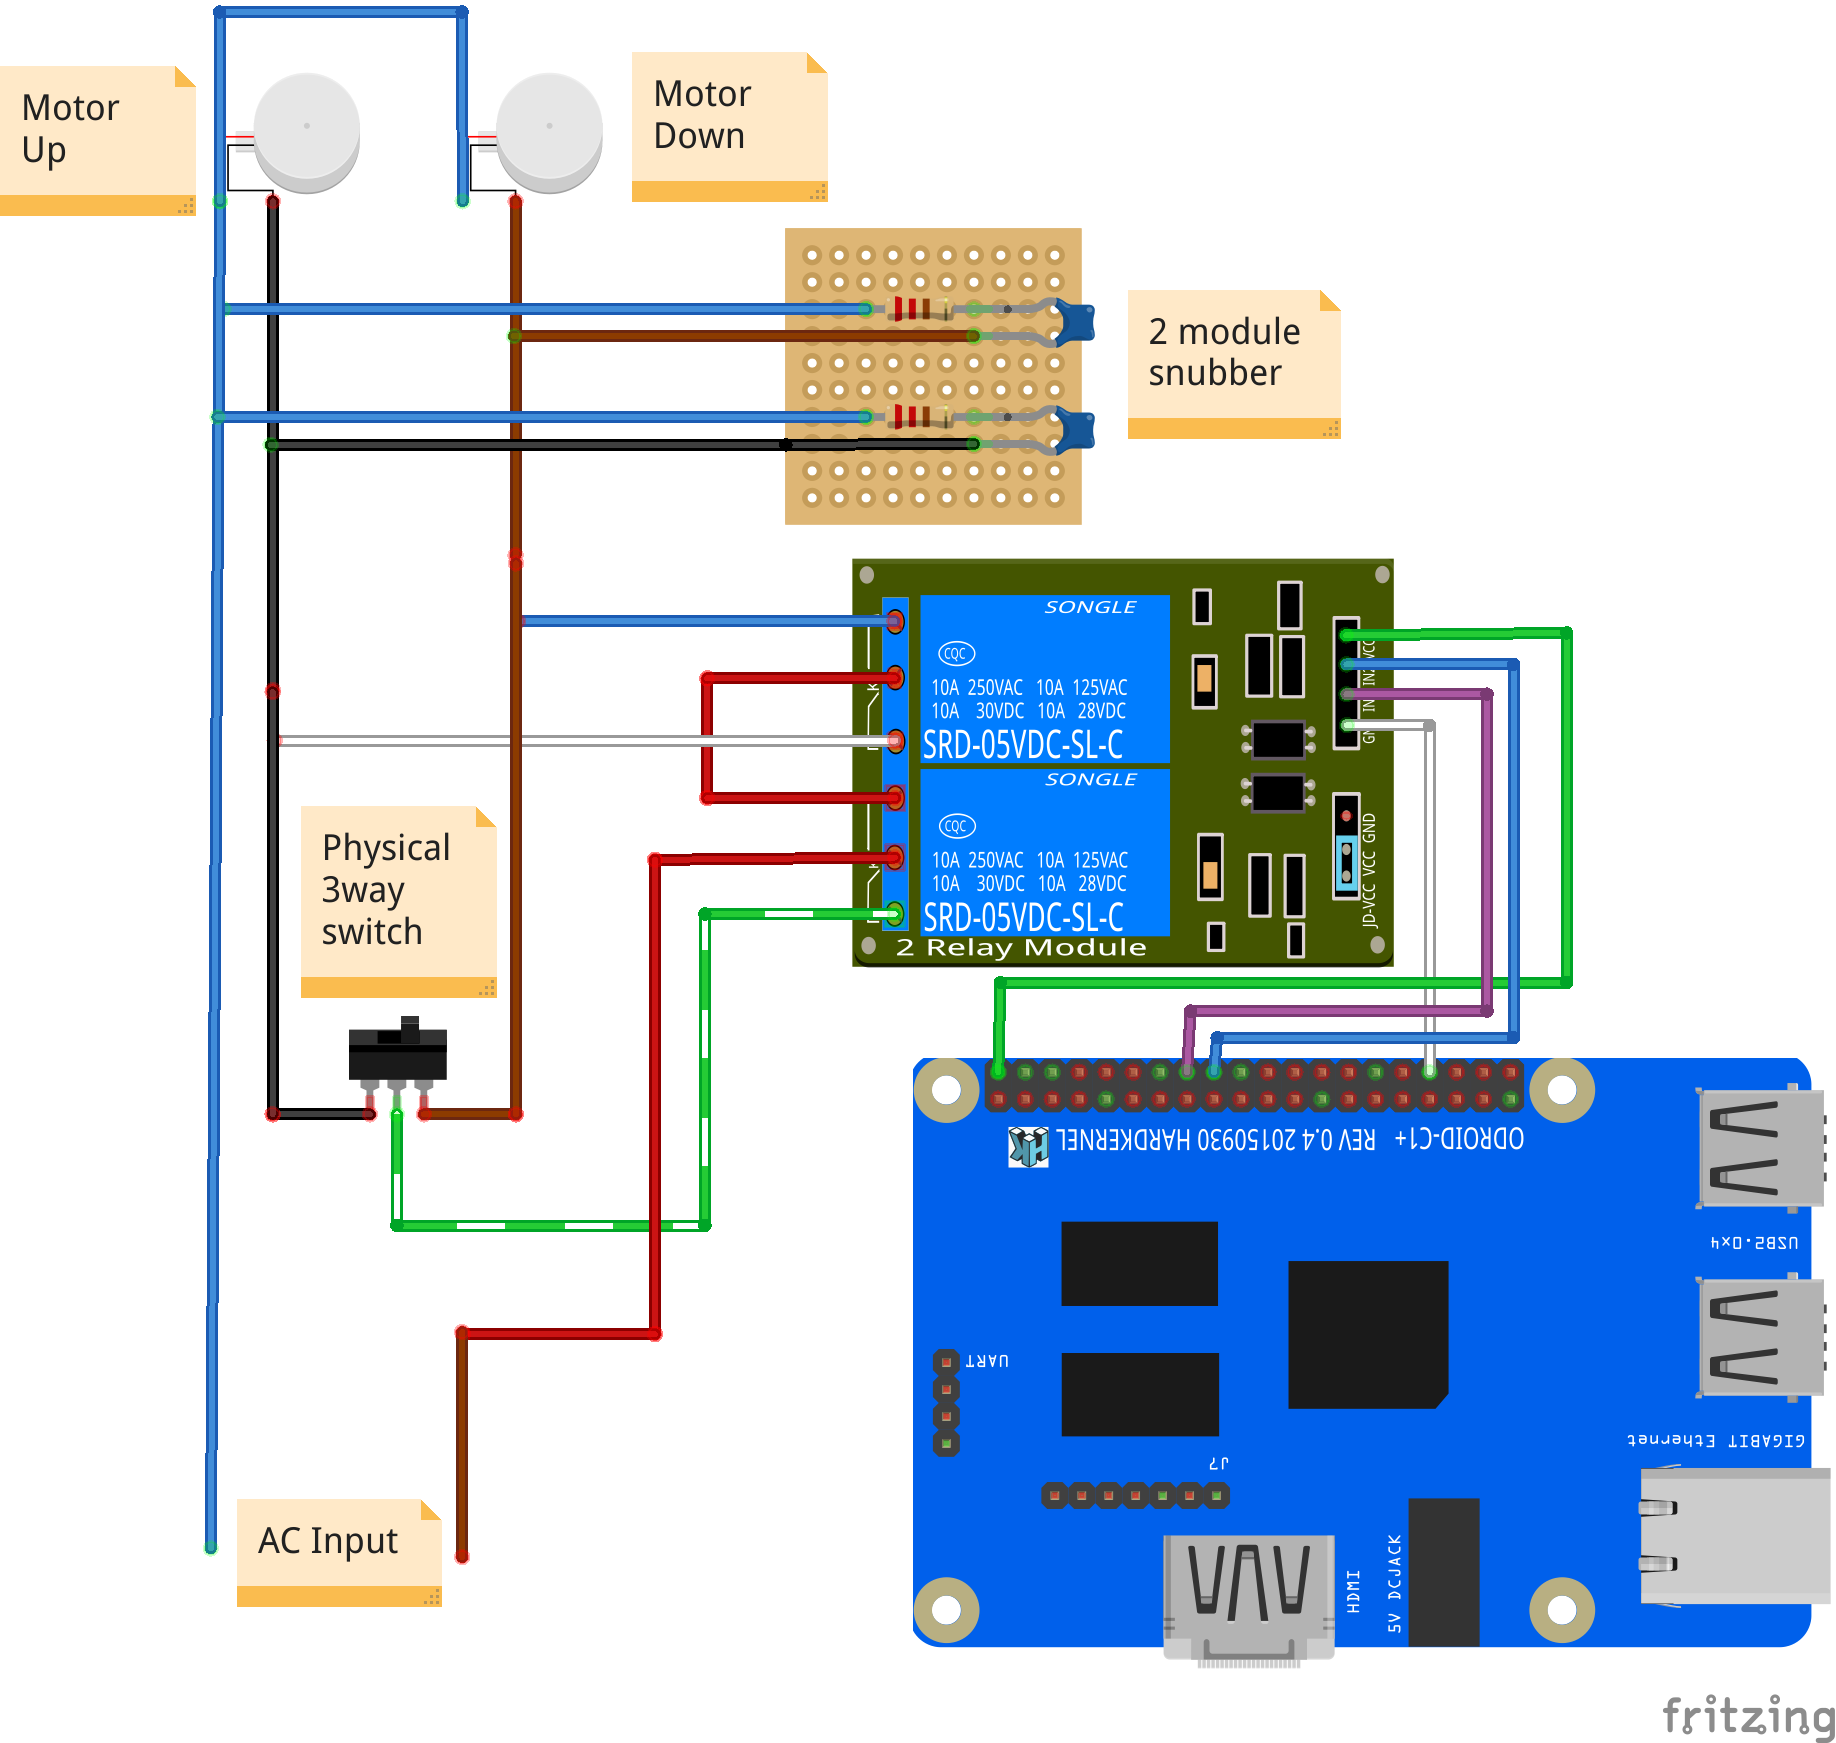 Home Assistant : Using Infrared, Motors, and Relays: Figure 10 Controlling a window blind motor